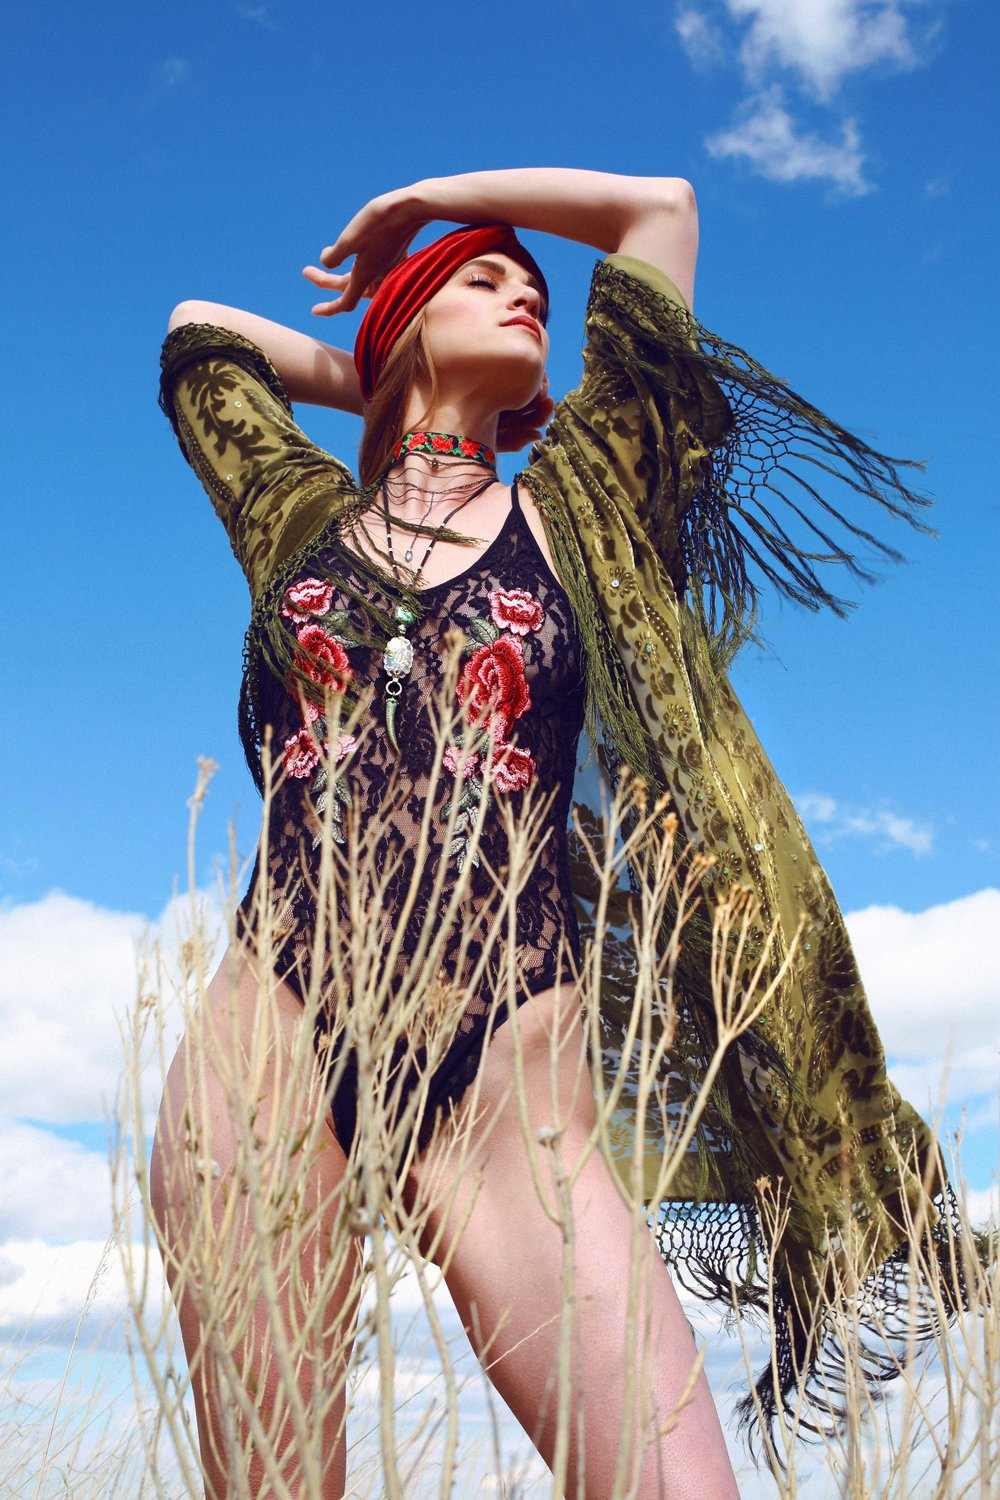 COLORADO GYPSY DREAMIN' - Photo Shoot Story shot by Alyssa Risley - IG @alyssarisley #BLUESKY #EDITORIAL #TUMBLEWEED